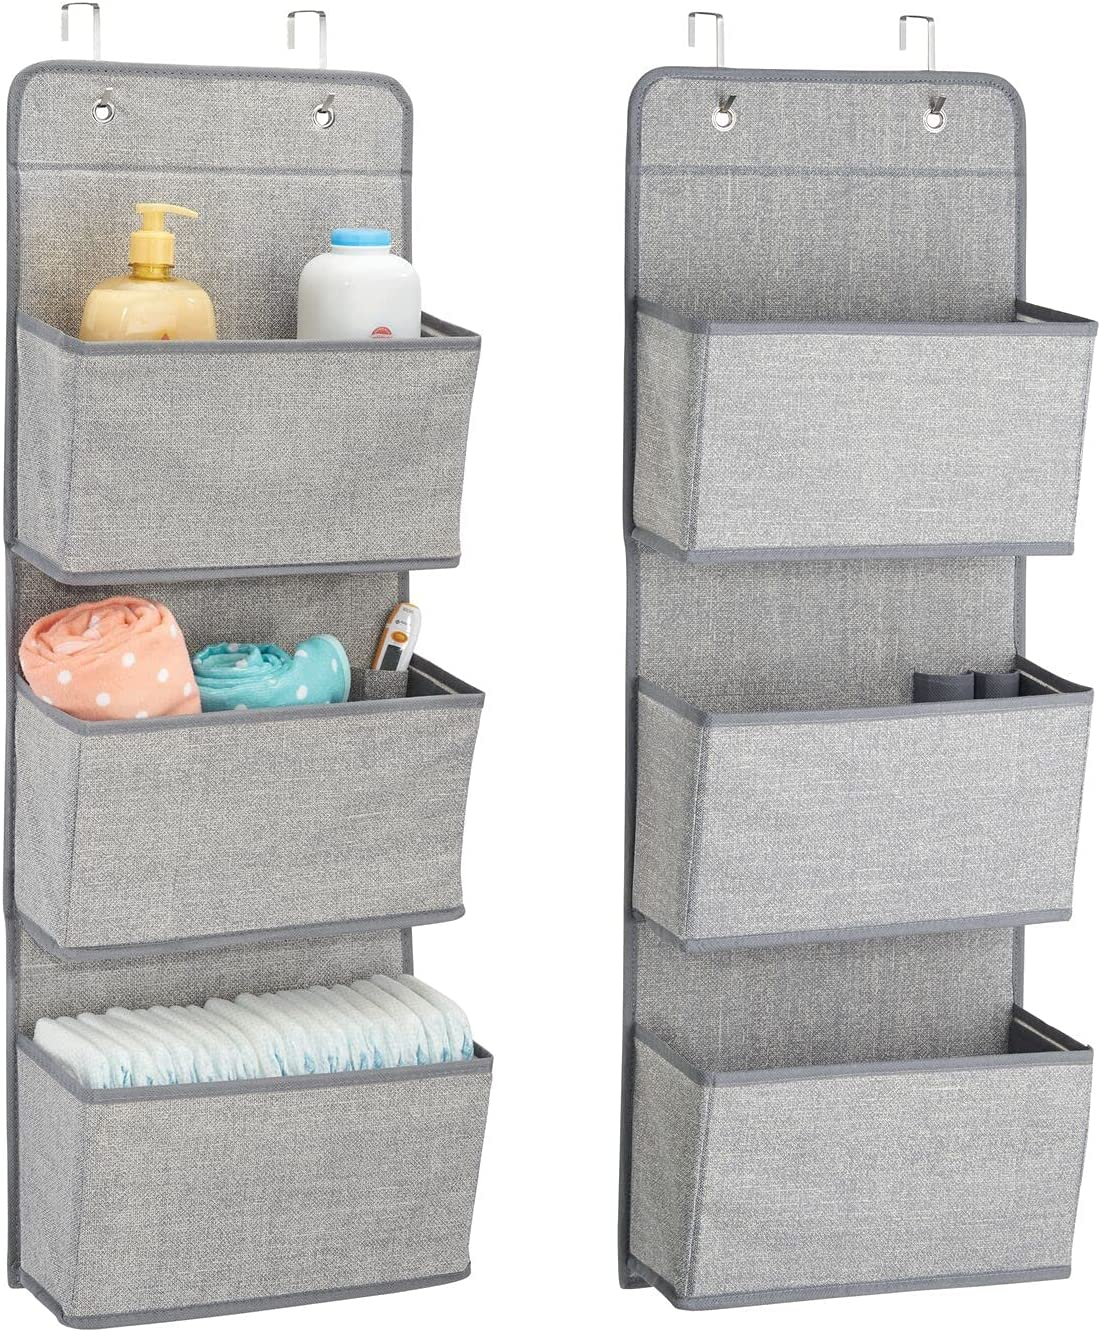 mDesign Soft Fabric Wall Mount/Over Door Hanging Storage Organizer - 3 Large Pockets for Child/Kids Room or Nursery, Hooks Included - Textured Print, 2 Pack - Gray